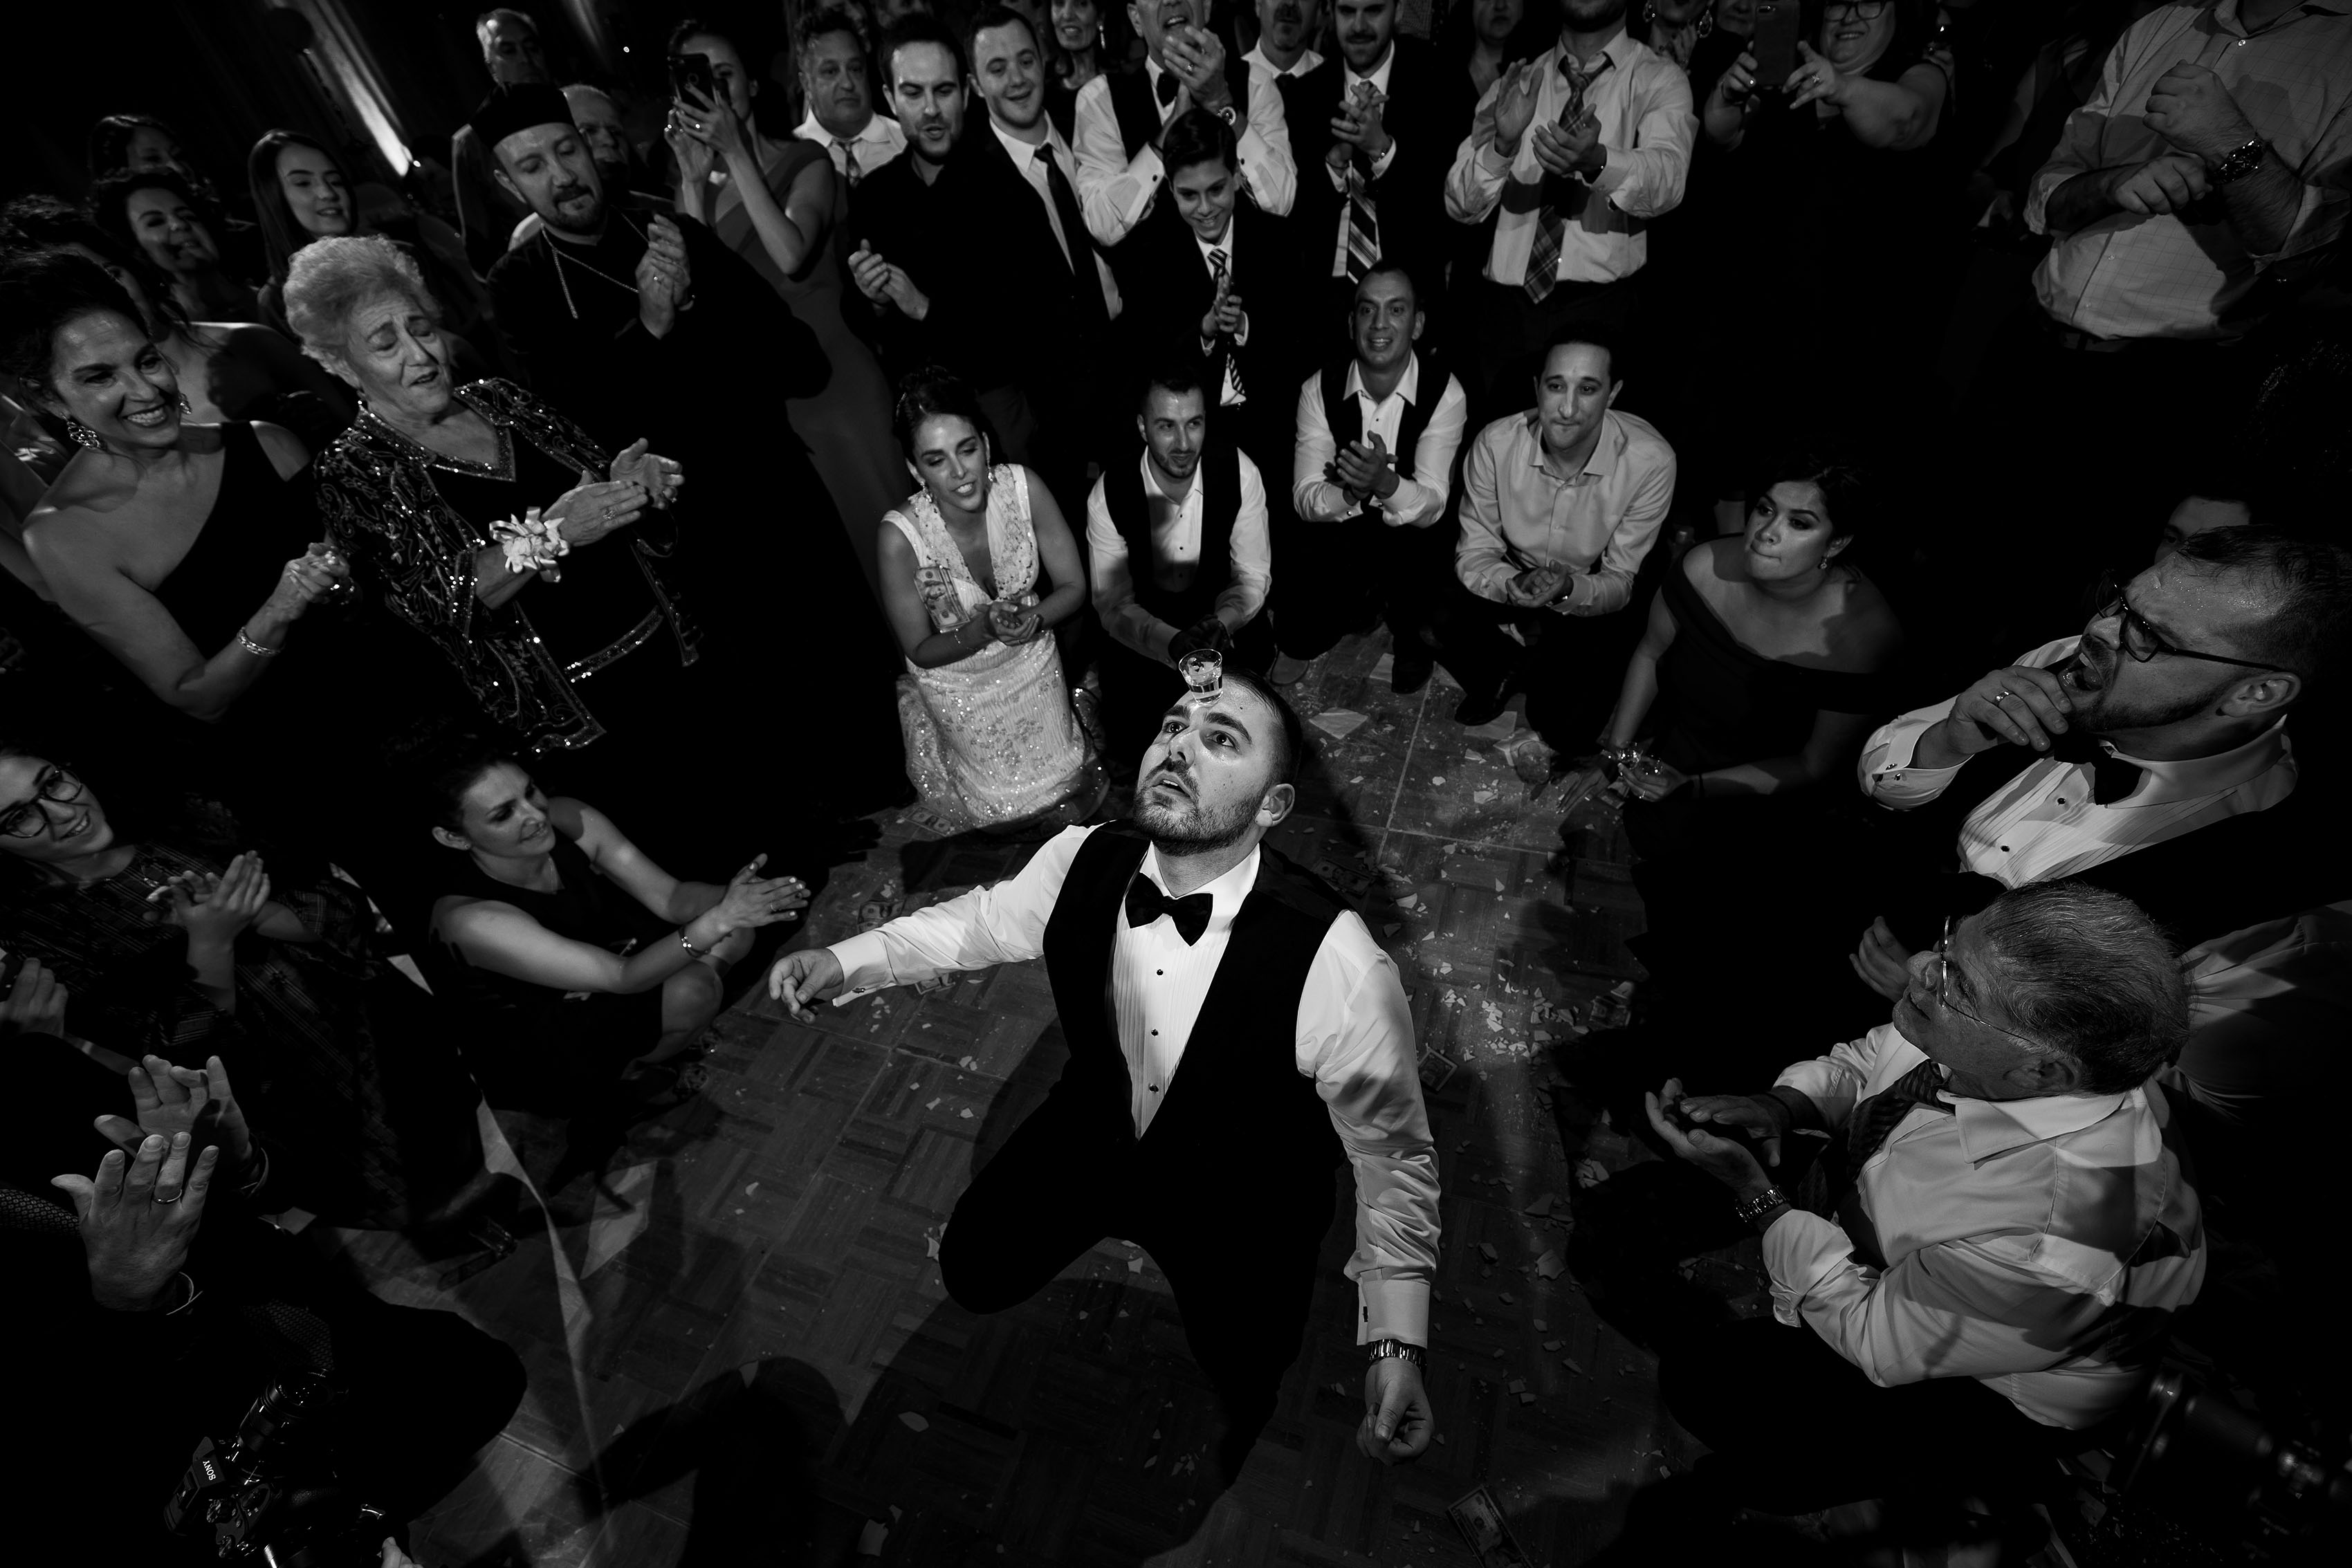 A guest dances with a shot of Ouzo on his forehead at a Greek wedding in Albuquerque at the Sheraton Uptown